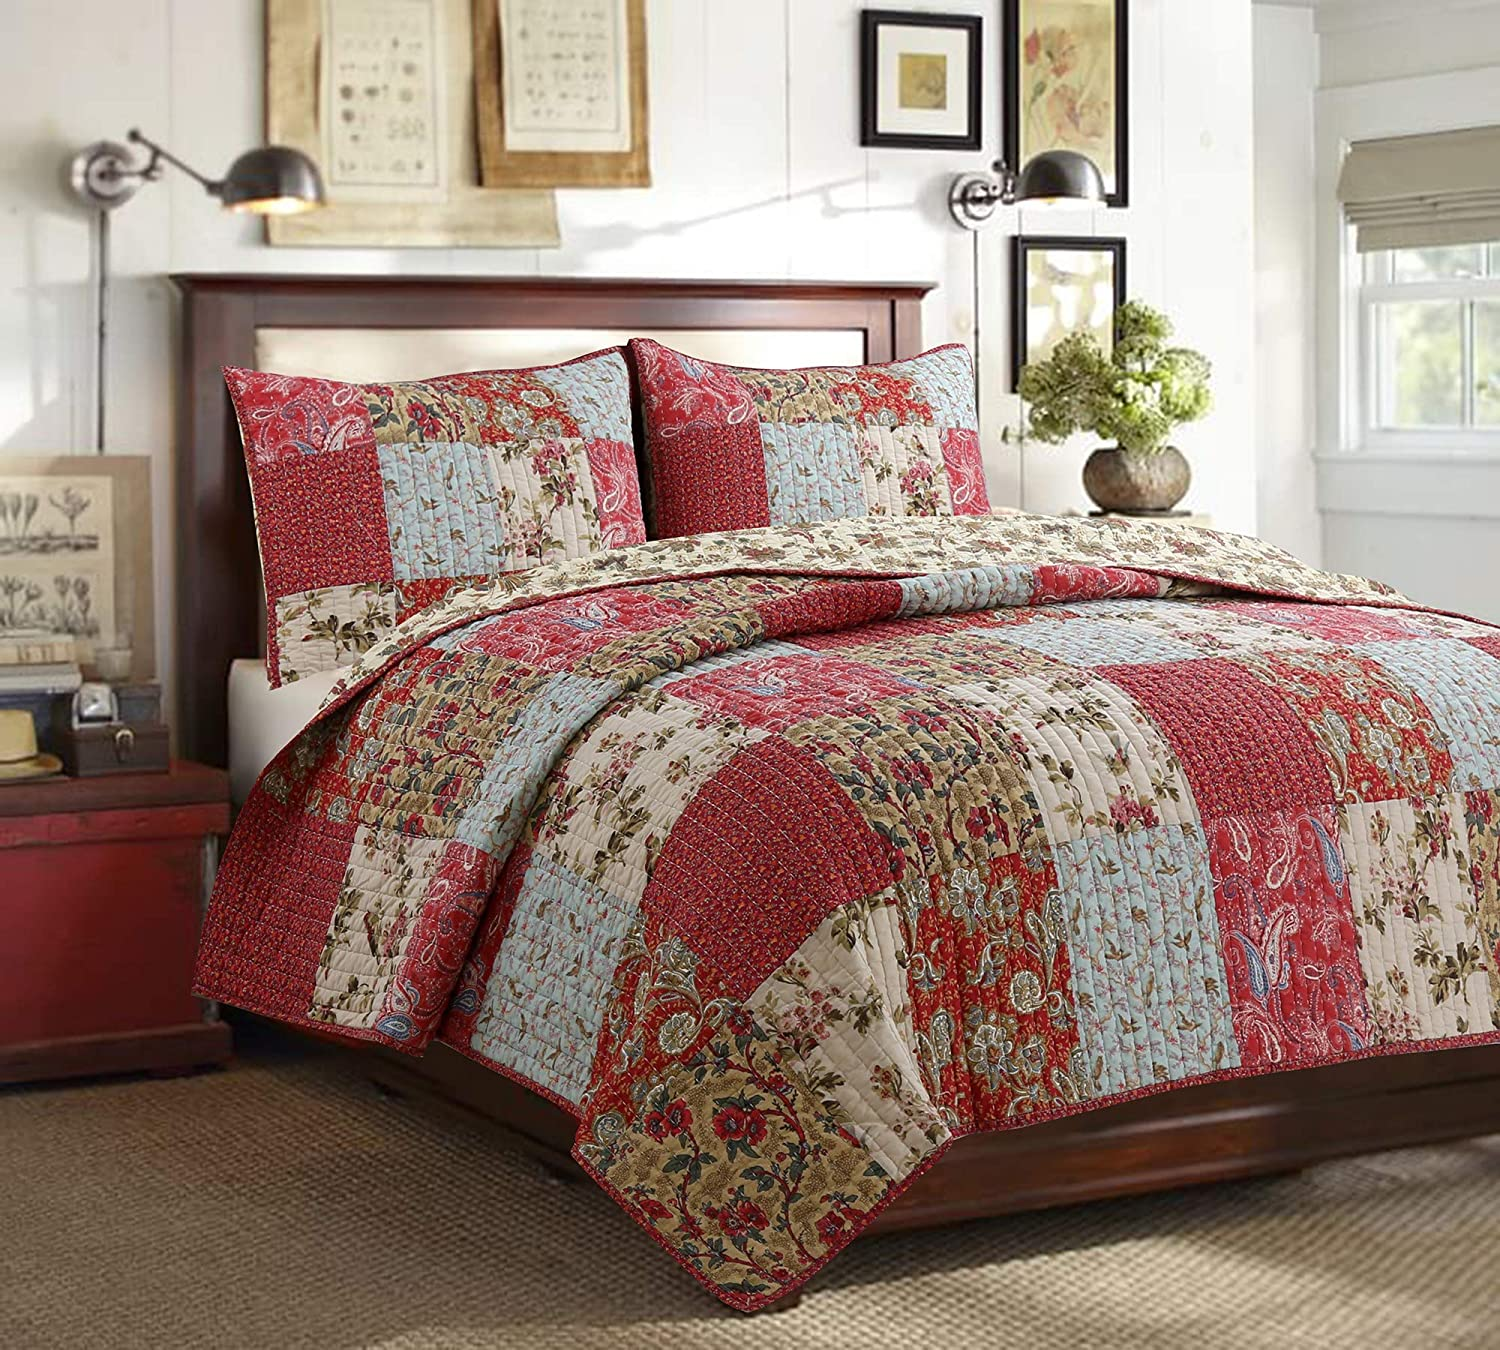 Reversible Coverlet Bedspread Quilt Bedding Set for Women (Red Aqua, Queen - 3 Piece)